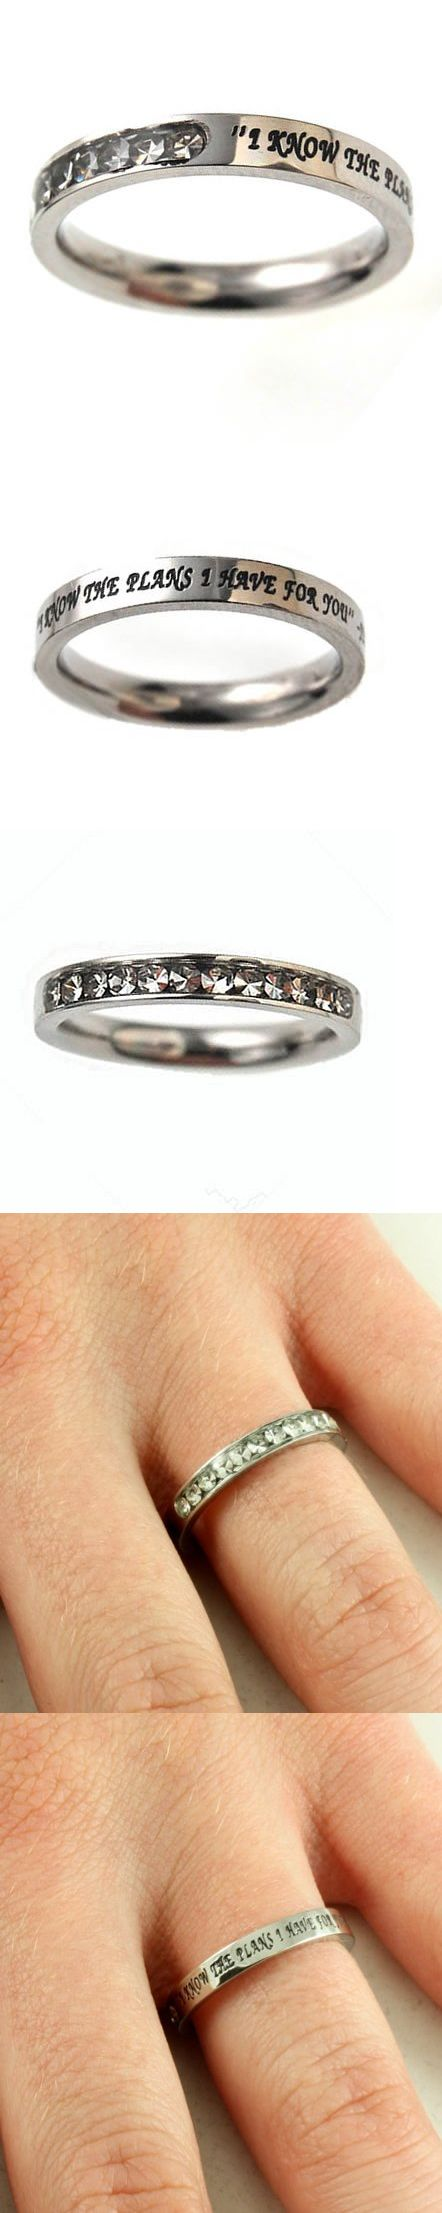 Christian Women's Stainless Steel Absitnence Princess Cut I Know the Plans I Have For You Jeremiah 29:11 Comfort Fit 3mm Cubic Zirconium Chastity Ring for Girls - Girls Purity Ring - Stackable - This petite stainless steel band for girls has 12 clear cubic zirconium stones covering 1/3 of the face while remaining 2/3 reveal engraved and black filled scripture I Know The Plans I Have For You ... - Stacking - Jewelry -